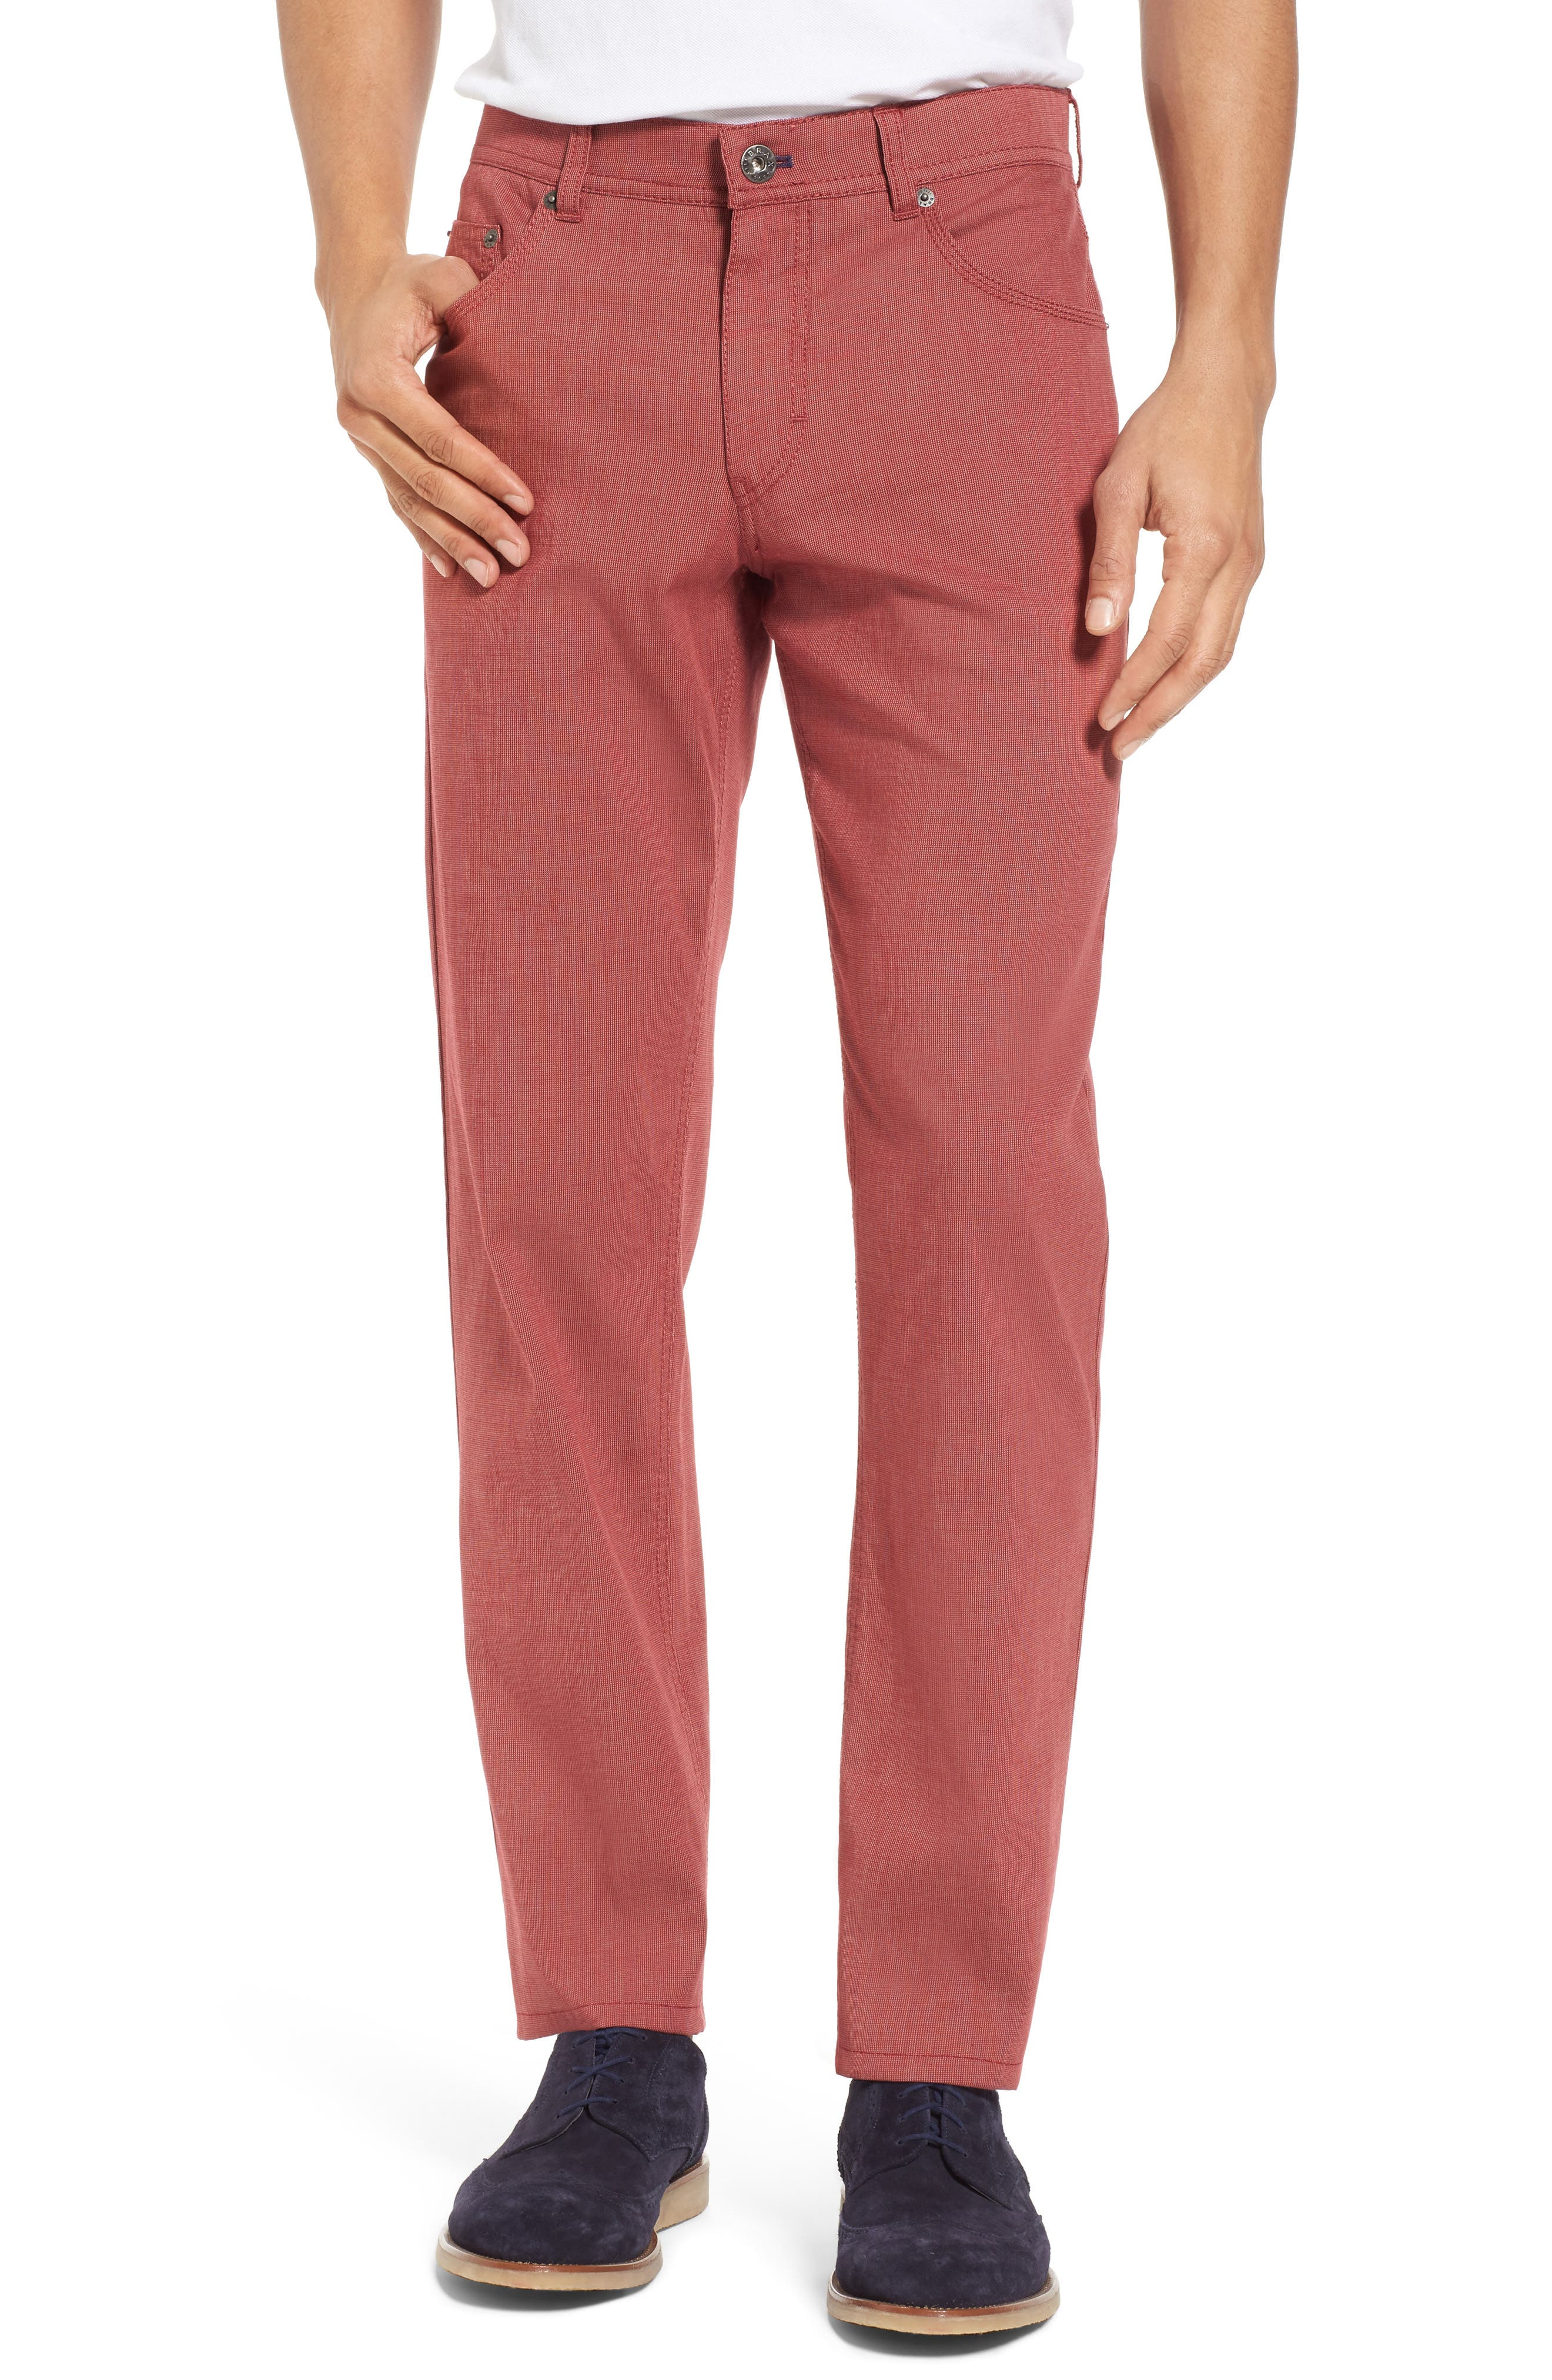 Sensation Stretch Trousers,                         Main,                         color, Red